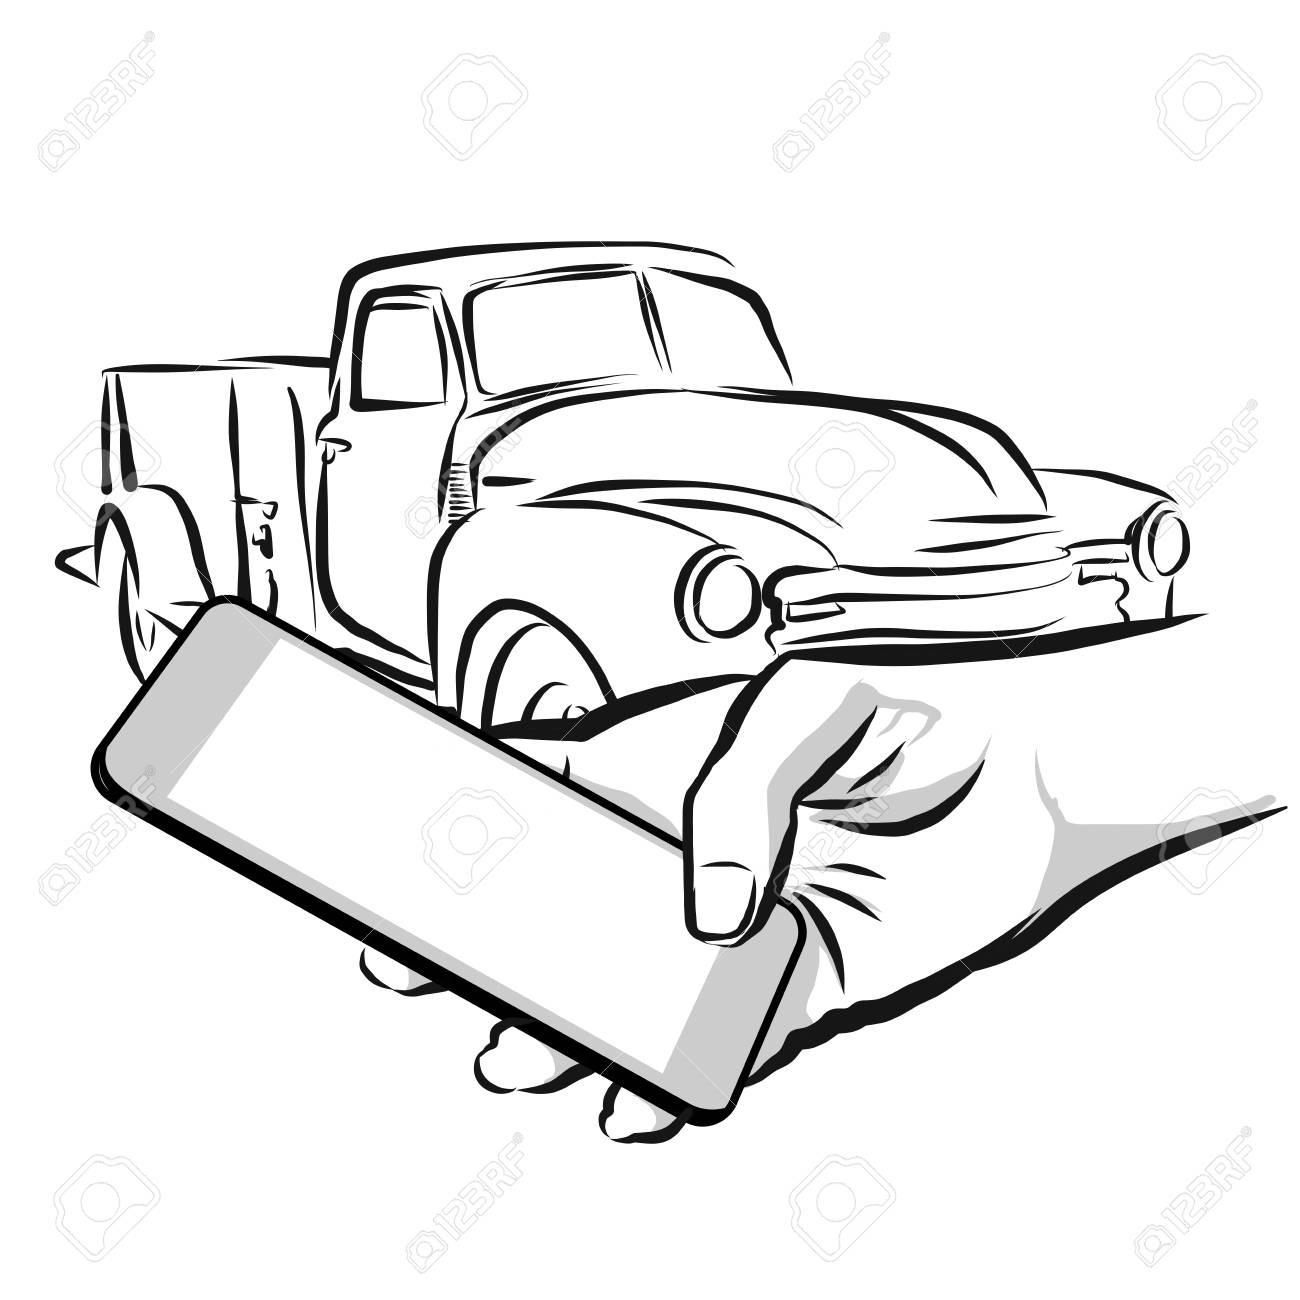 Car Rental Service Via Cellphone App Concept Design Vector Outline Royalty Free Cliparts Vectors And Stock Illustration Image 58705660